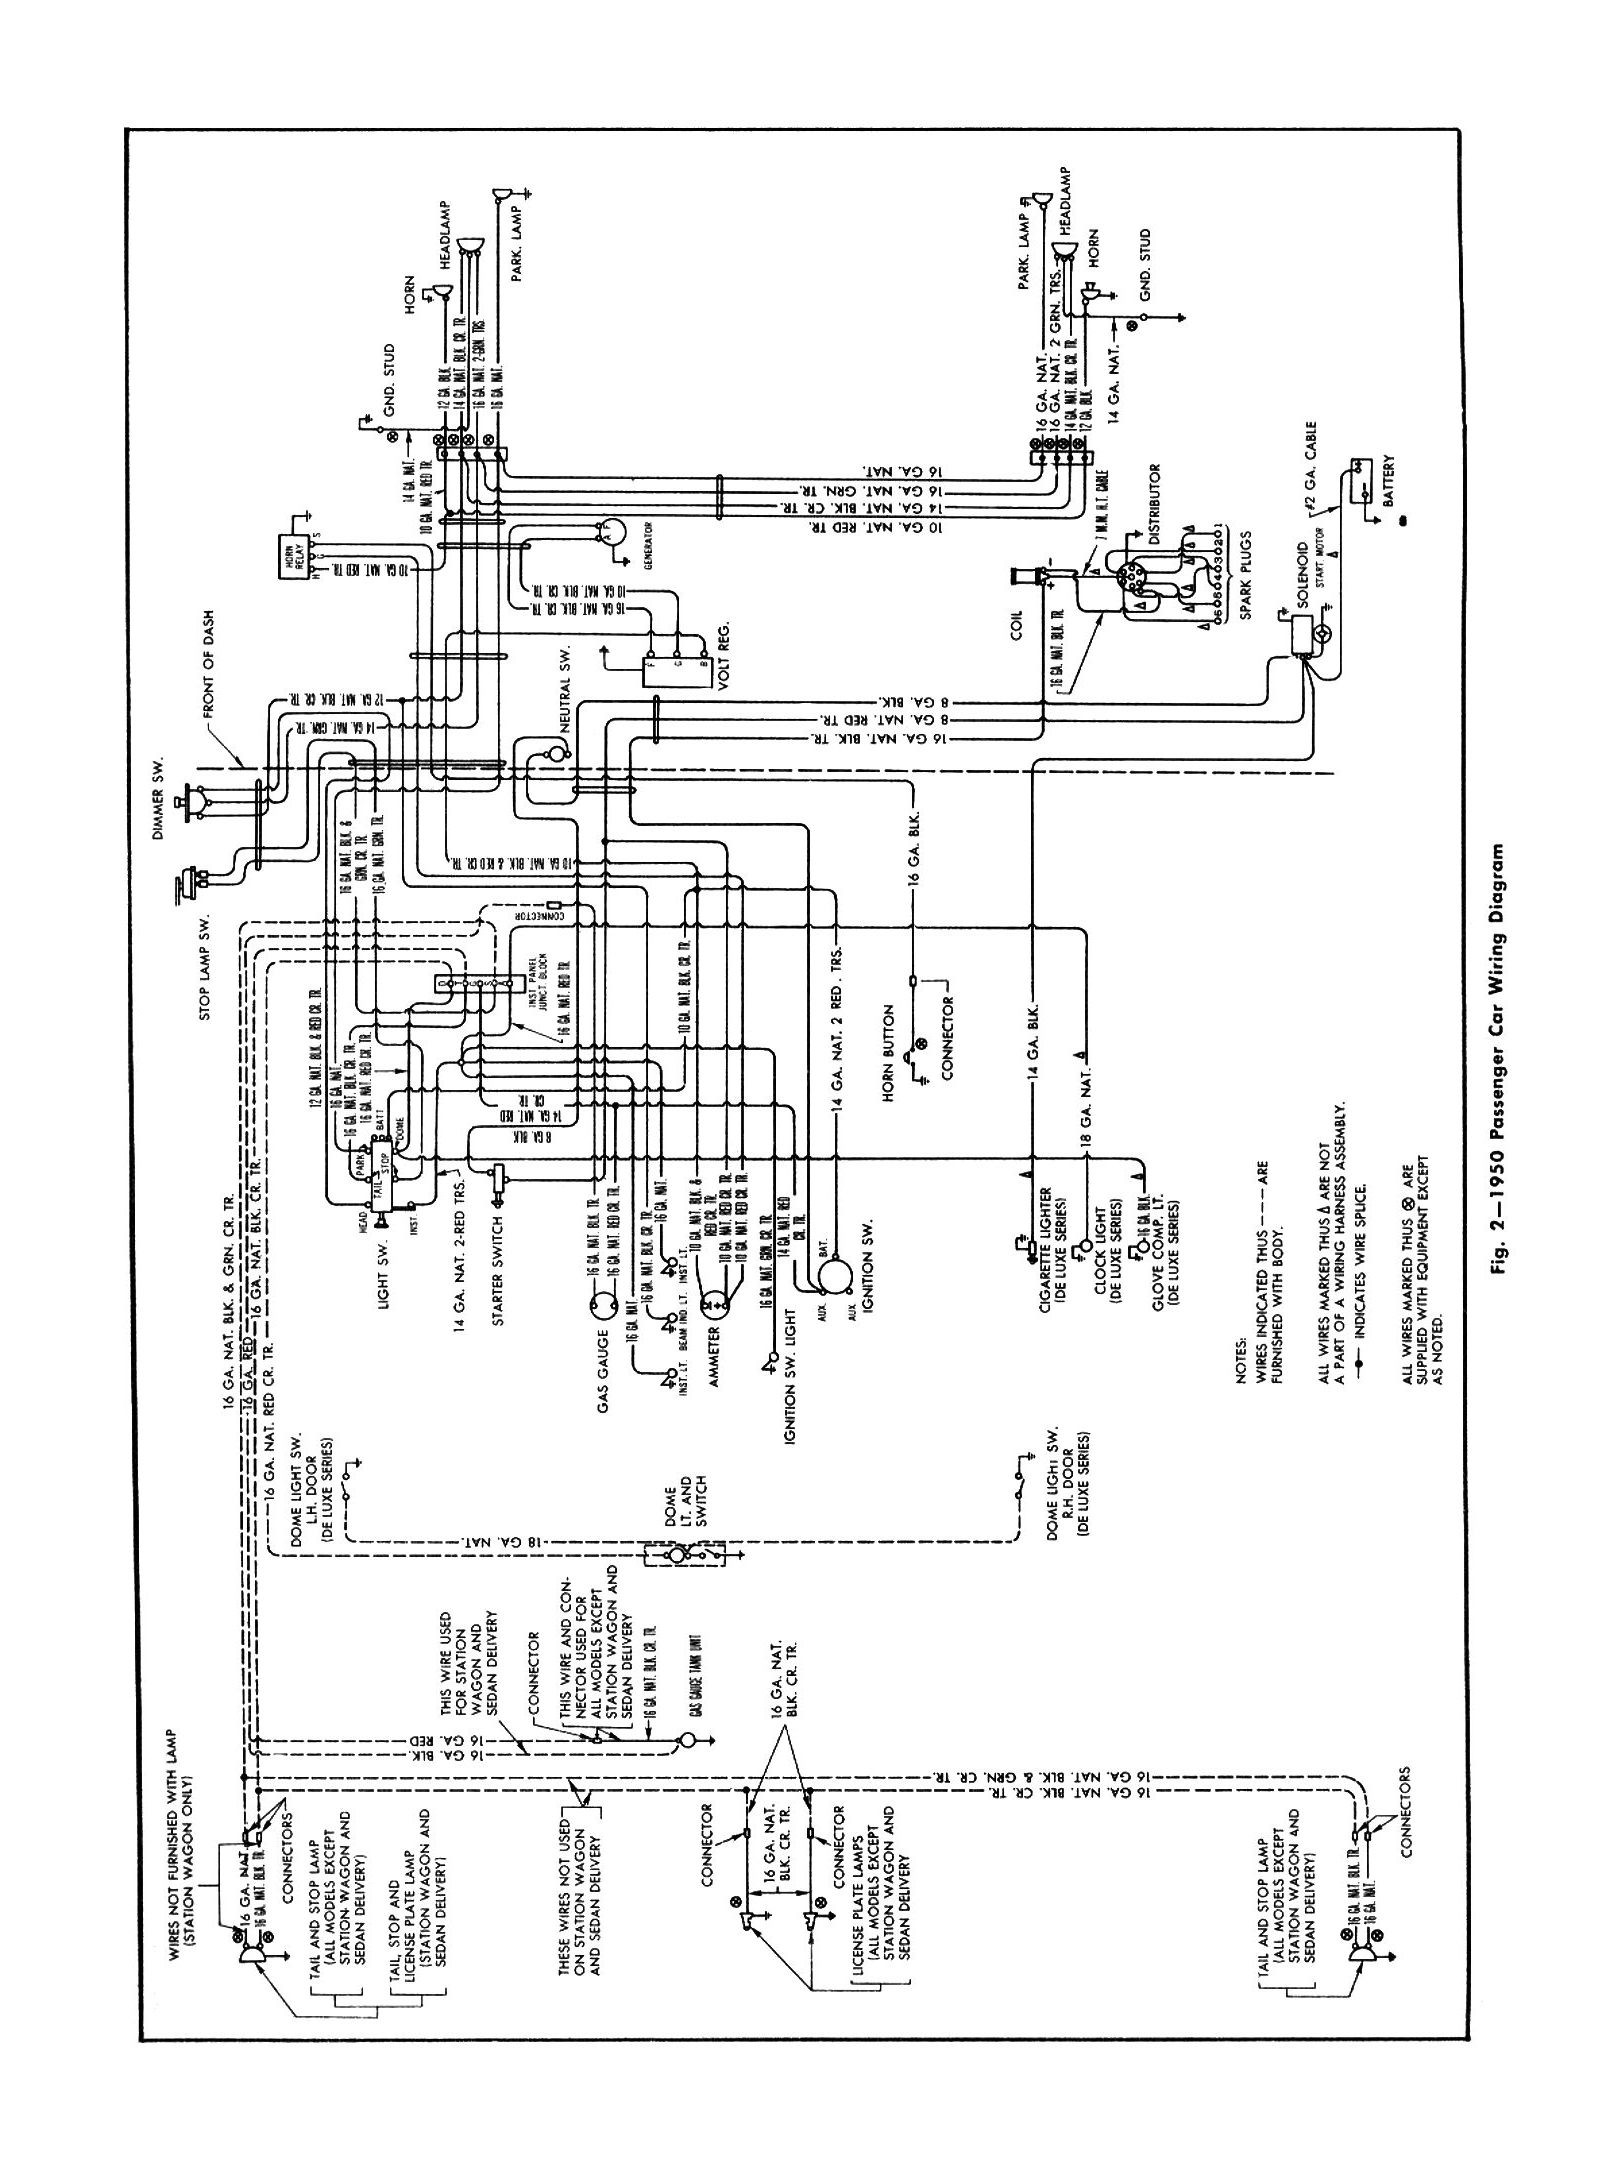 Wiring on 49 chevy truck wiring diagram